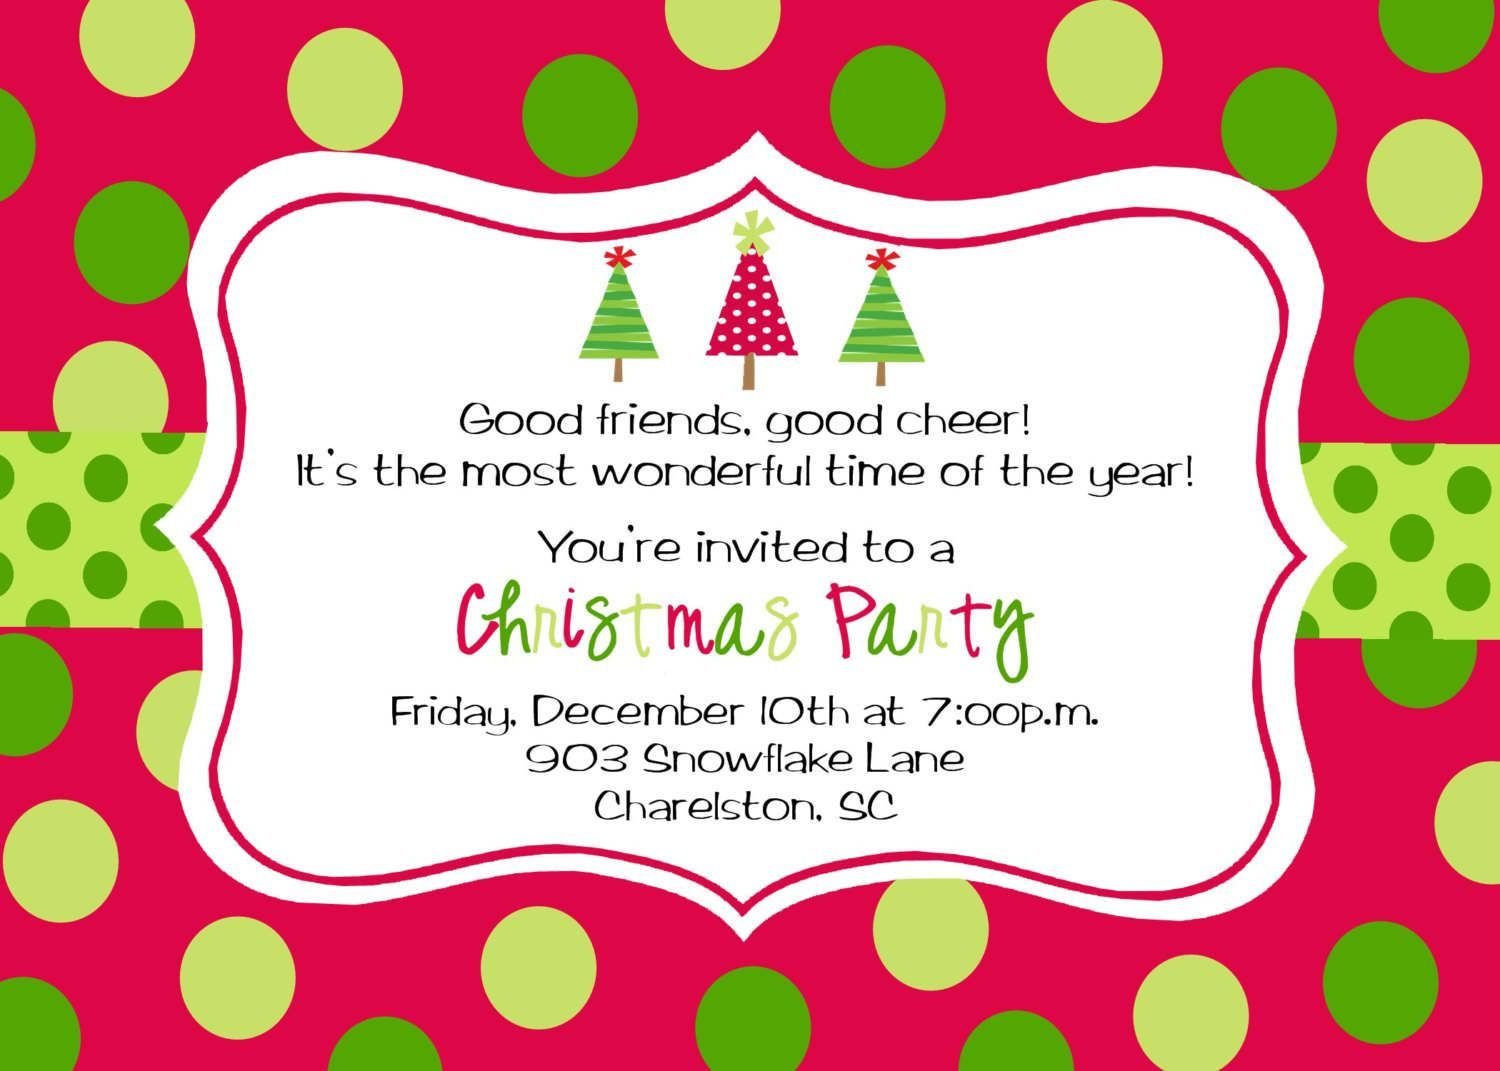 008 Phenomenal Christma Party Invite Template Concept  Microsoft Word Free Download Holiday Invitation PowerpointFull